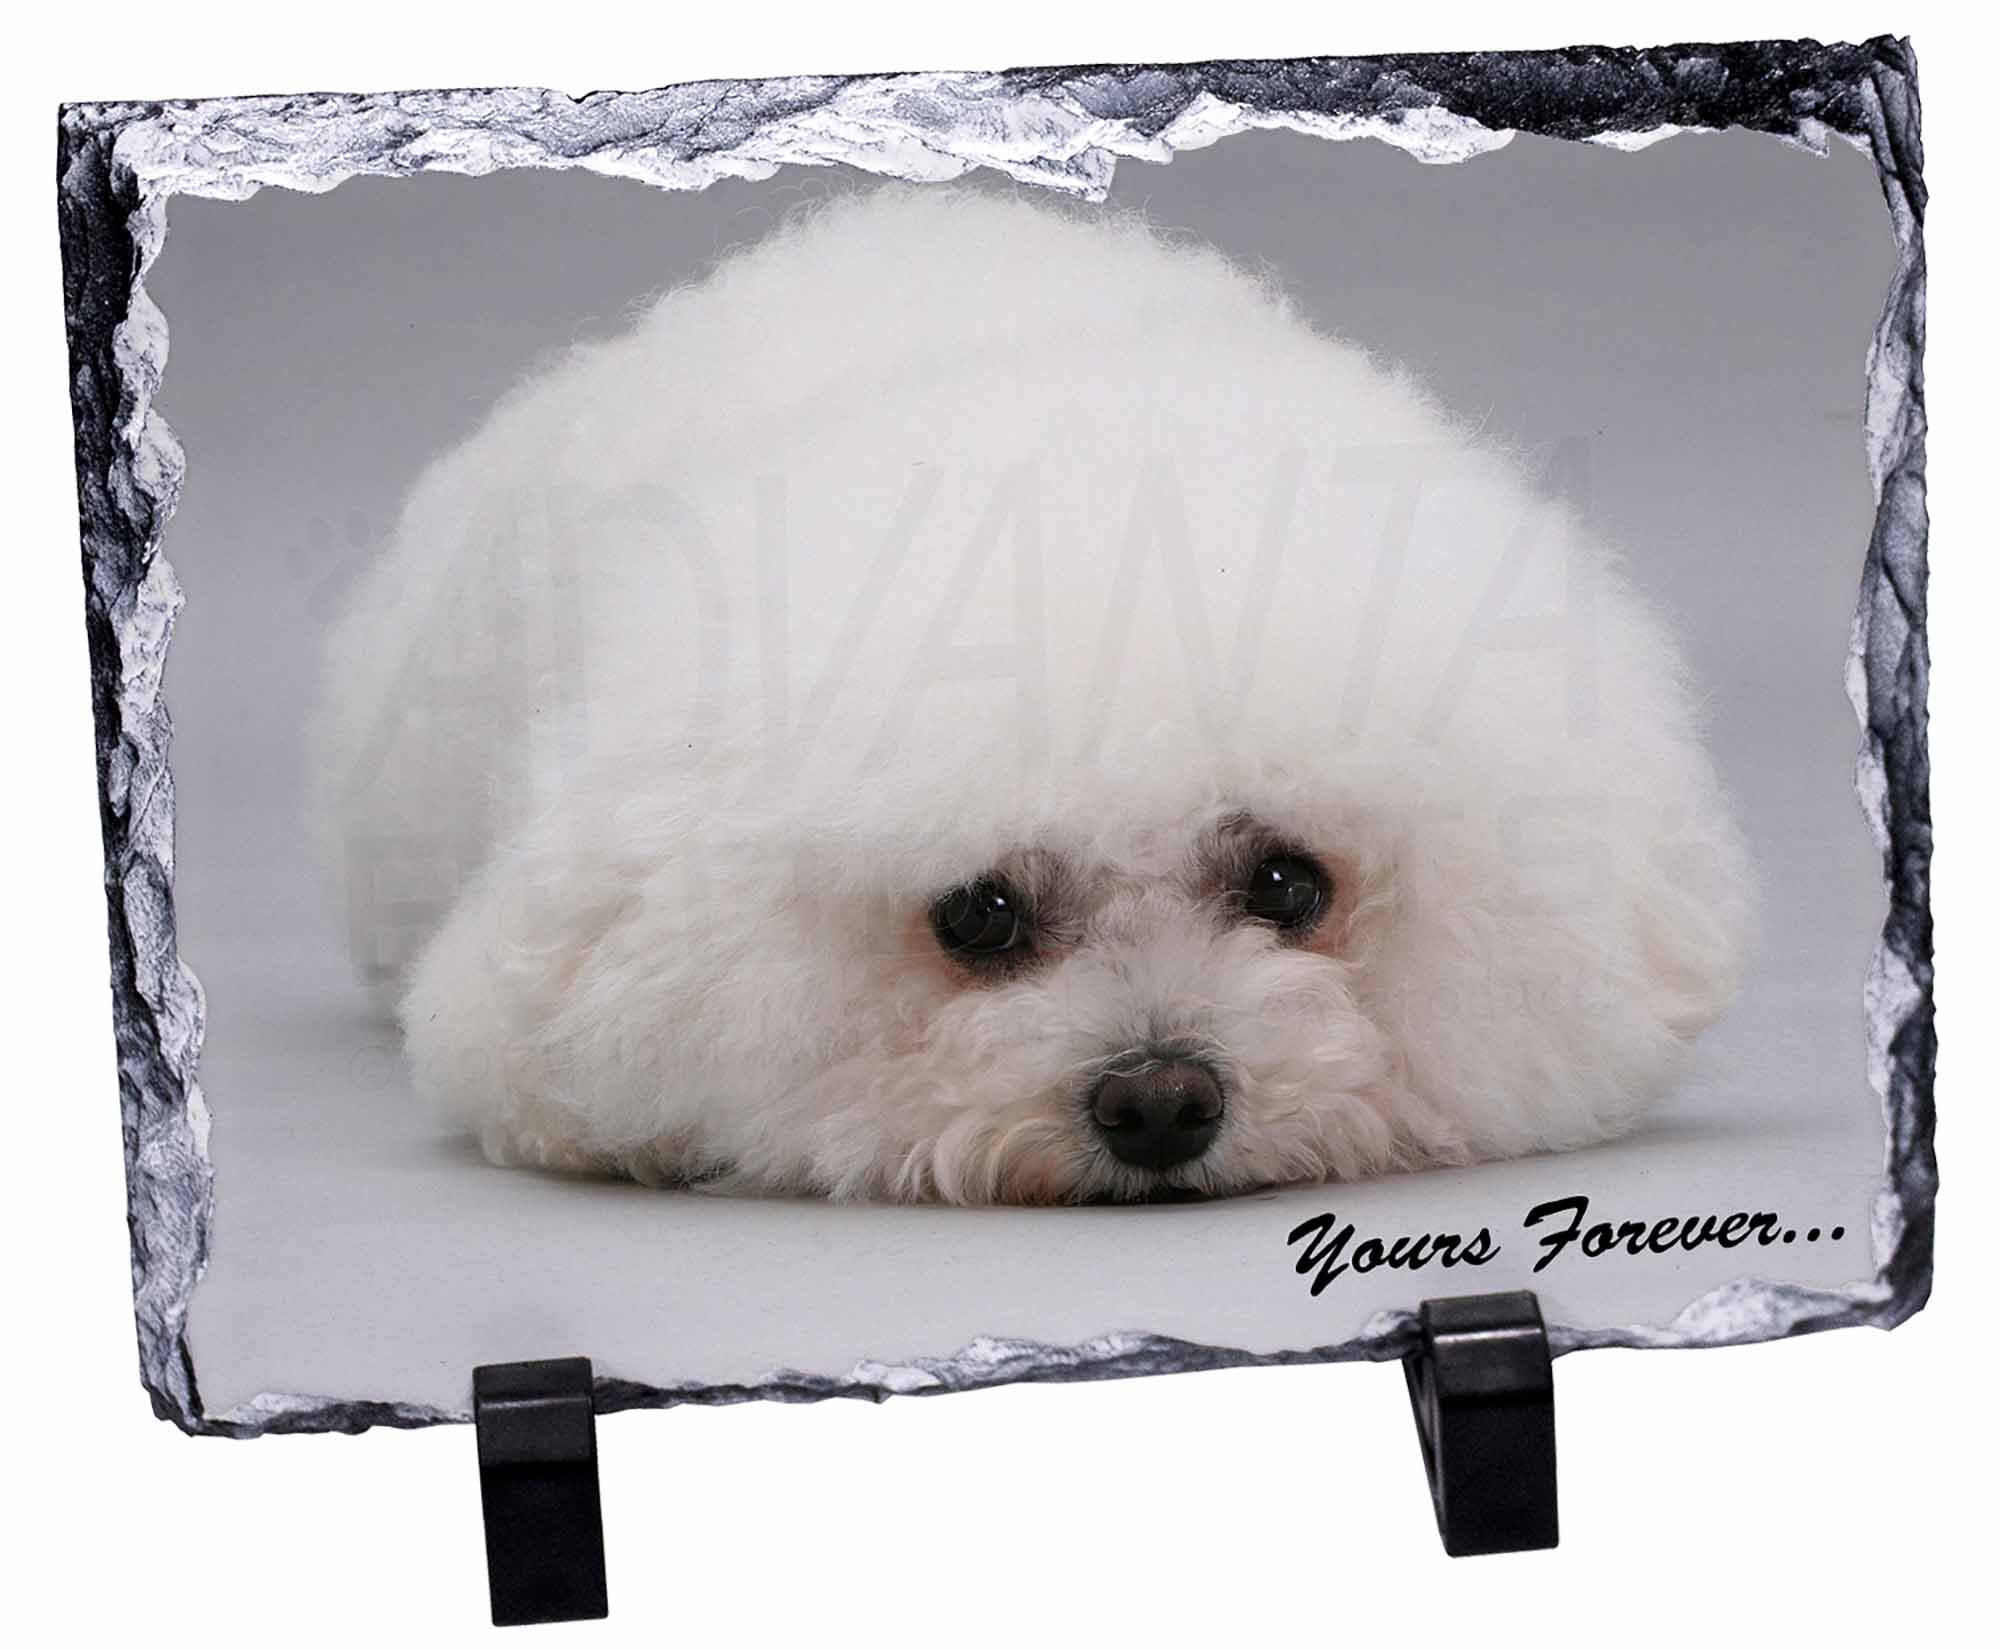 AD-BF3SL Bichon Frise Dog /'Yours Forever/' Photo Slate Christmas Gift Ornament